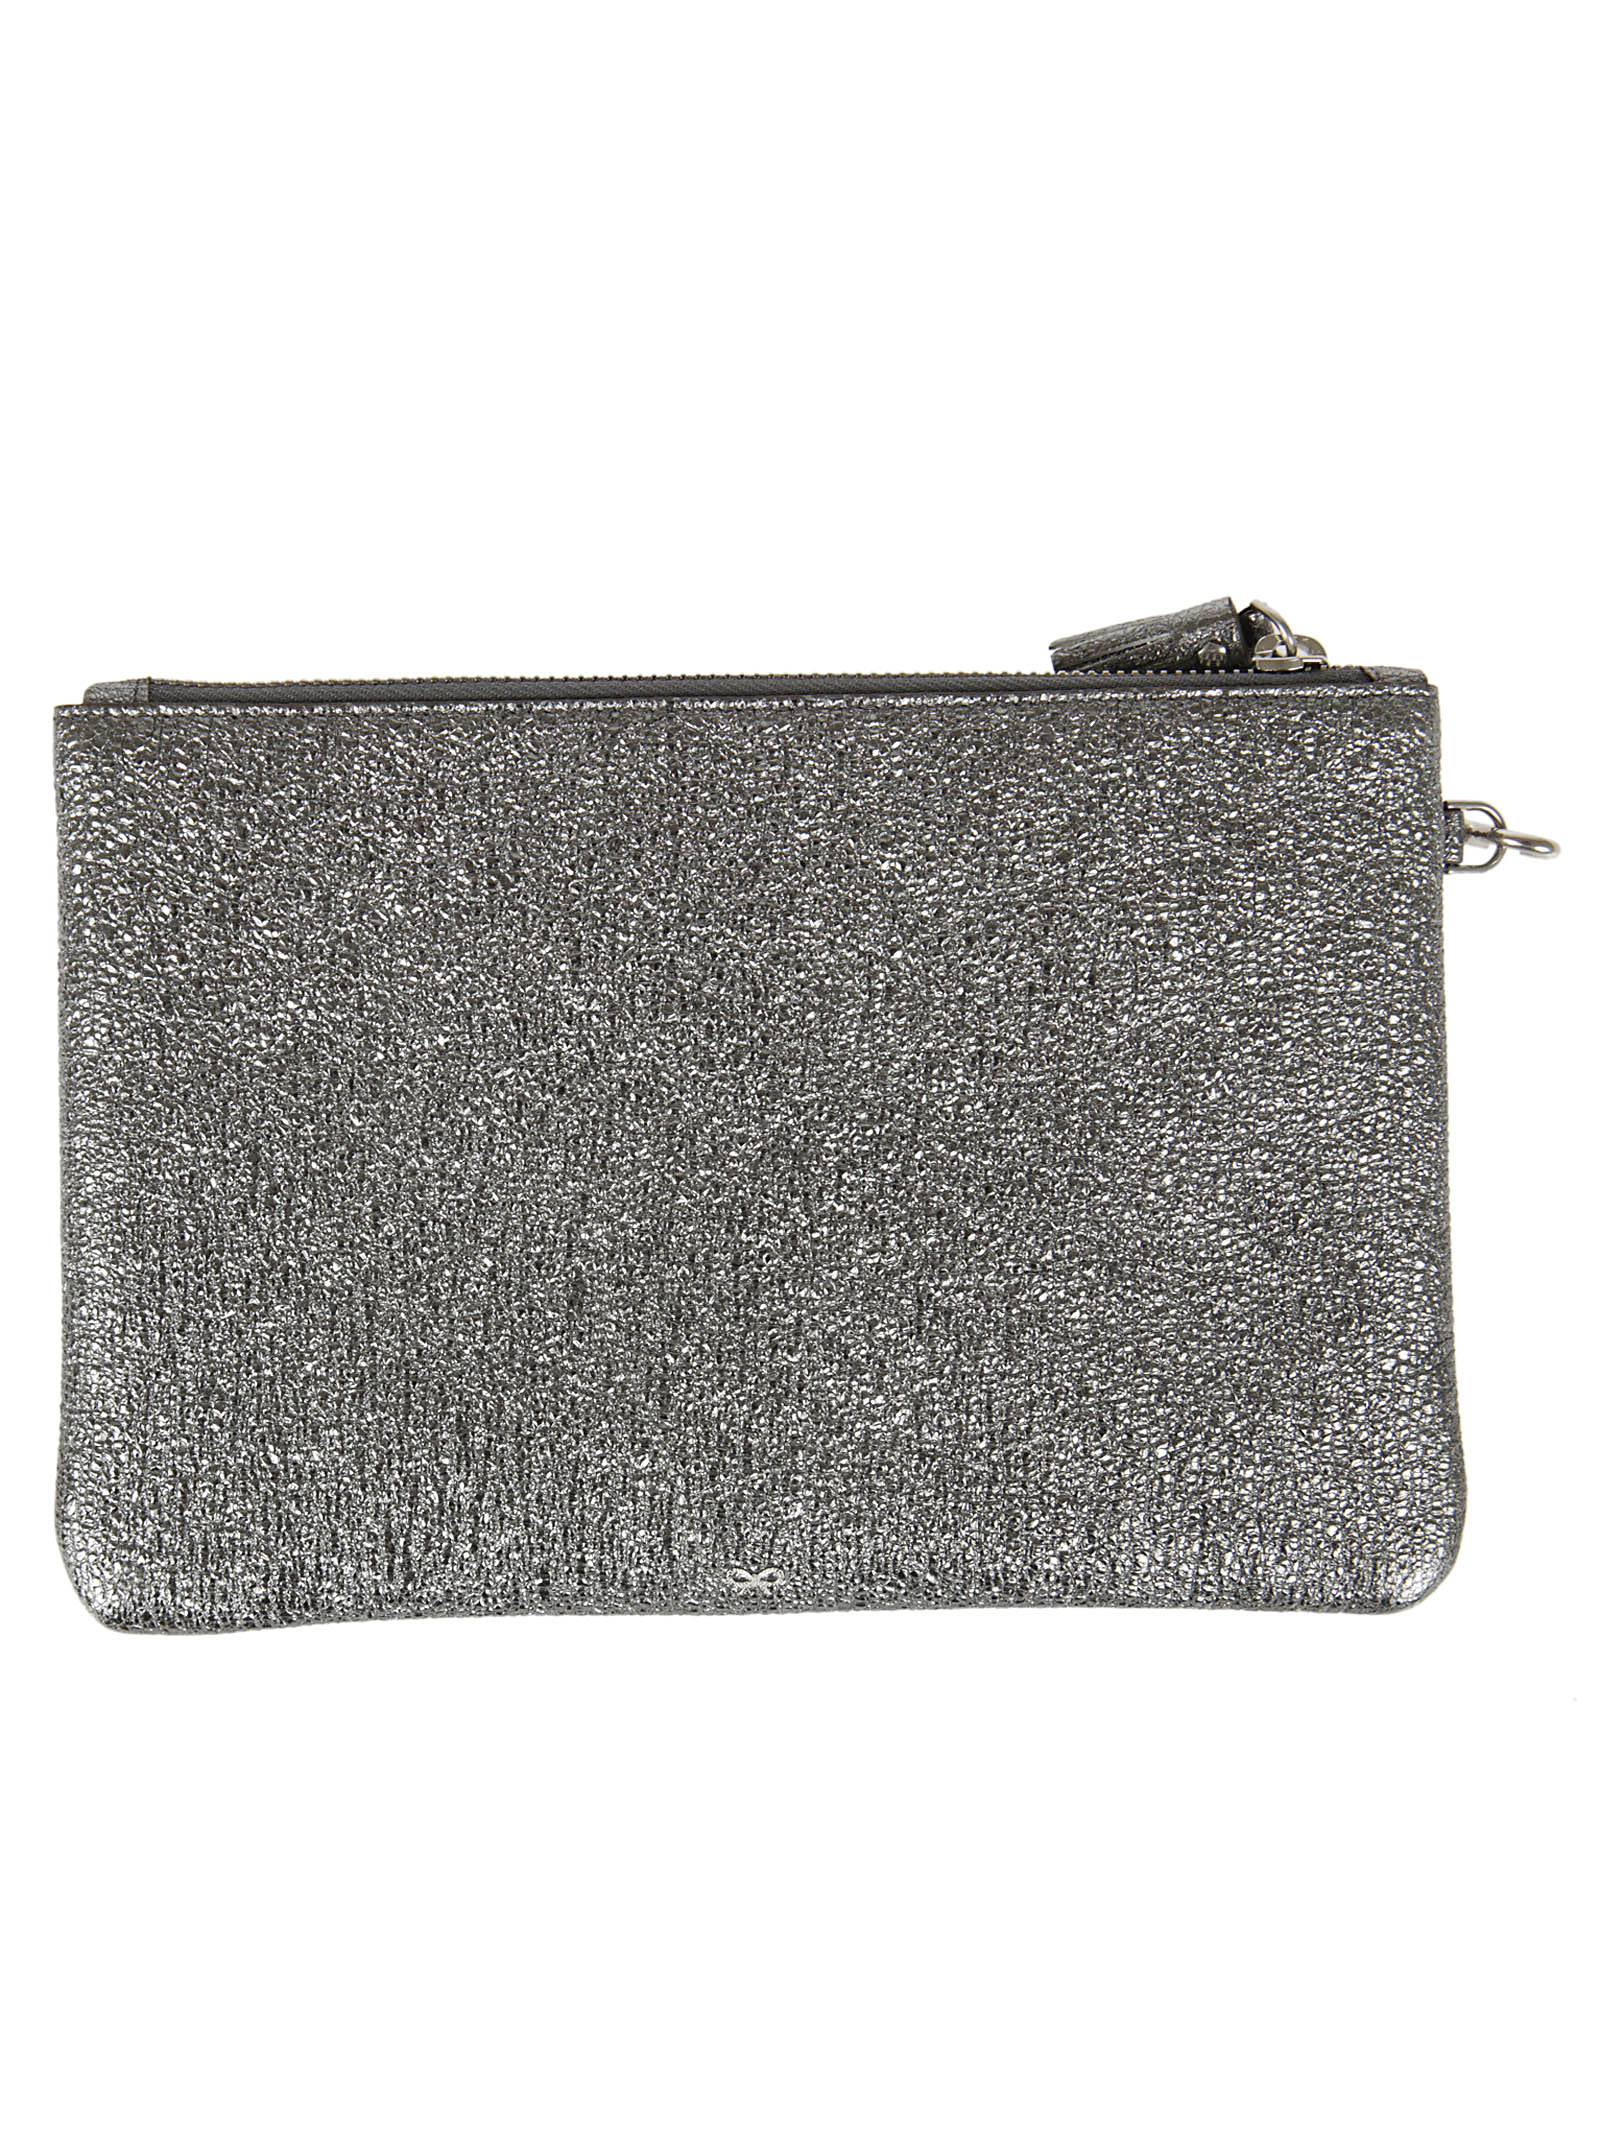 Anya Hindmach zip top pouch diamante eyes in crinkled metallic